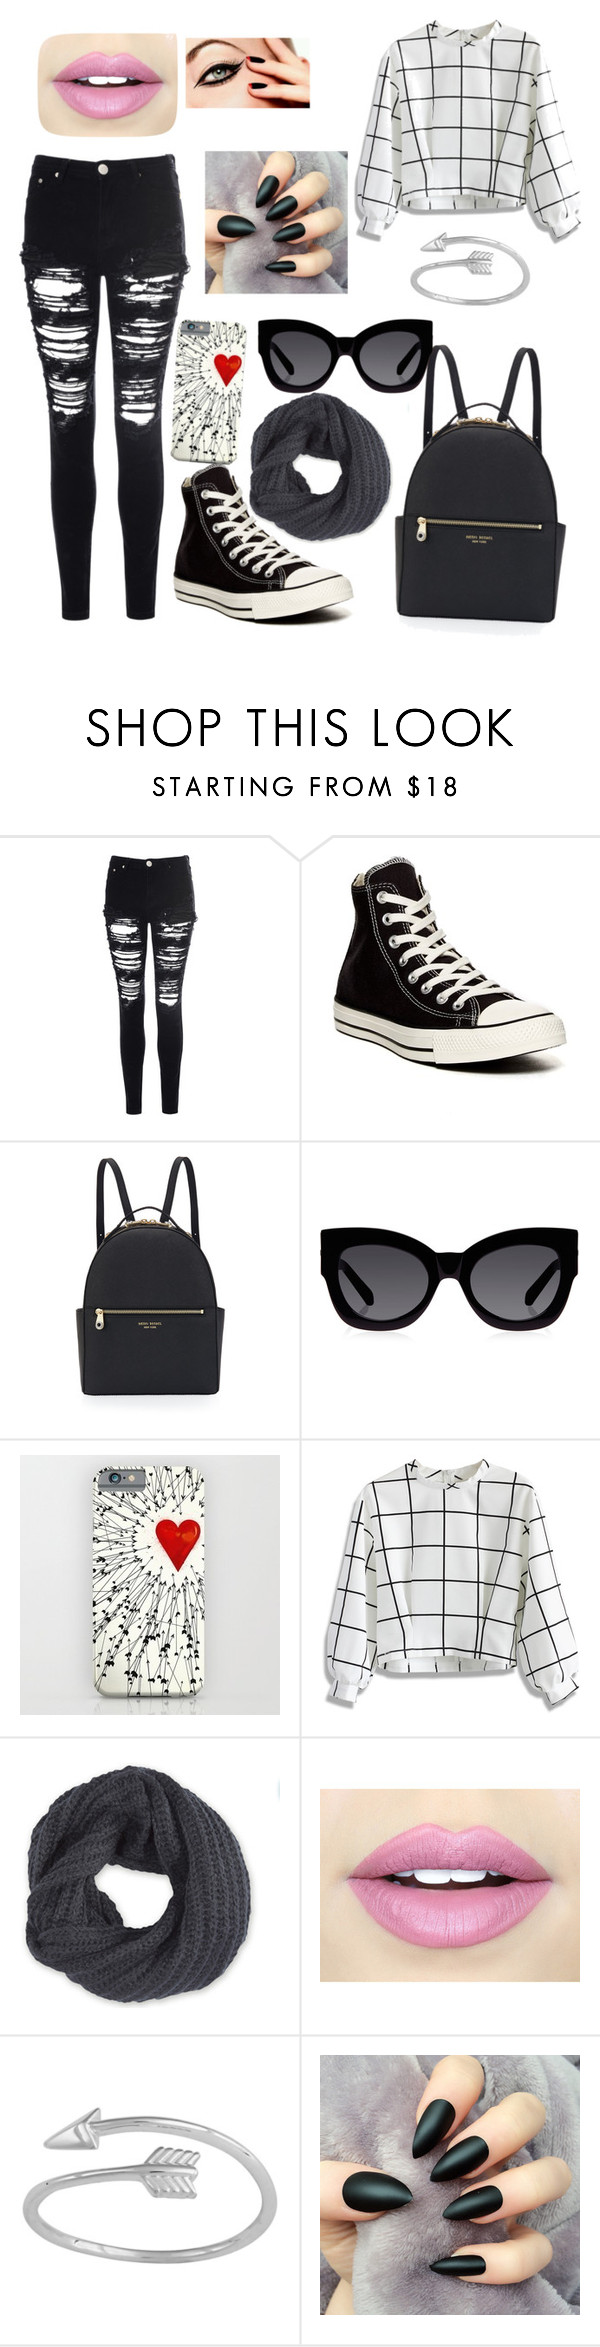 """""""Untitled #110"""" by kailastrawberry ❤ liked on Polyvore featuring beauty, Glamorous, Converse, Henri Bendel, Karen Walker, Chicwish, Frenchi and Fiebiger"""